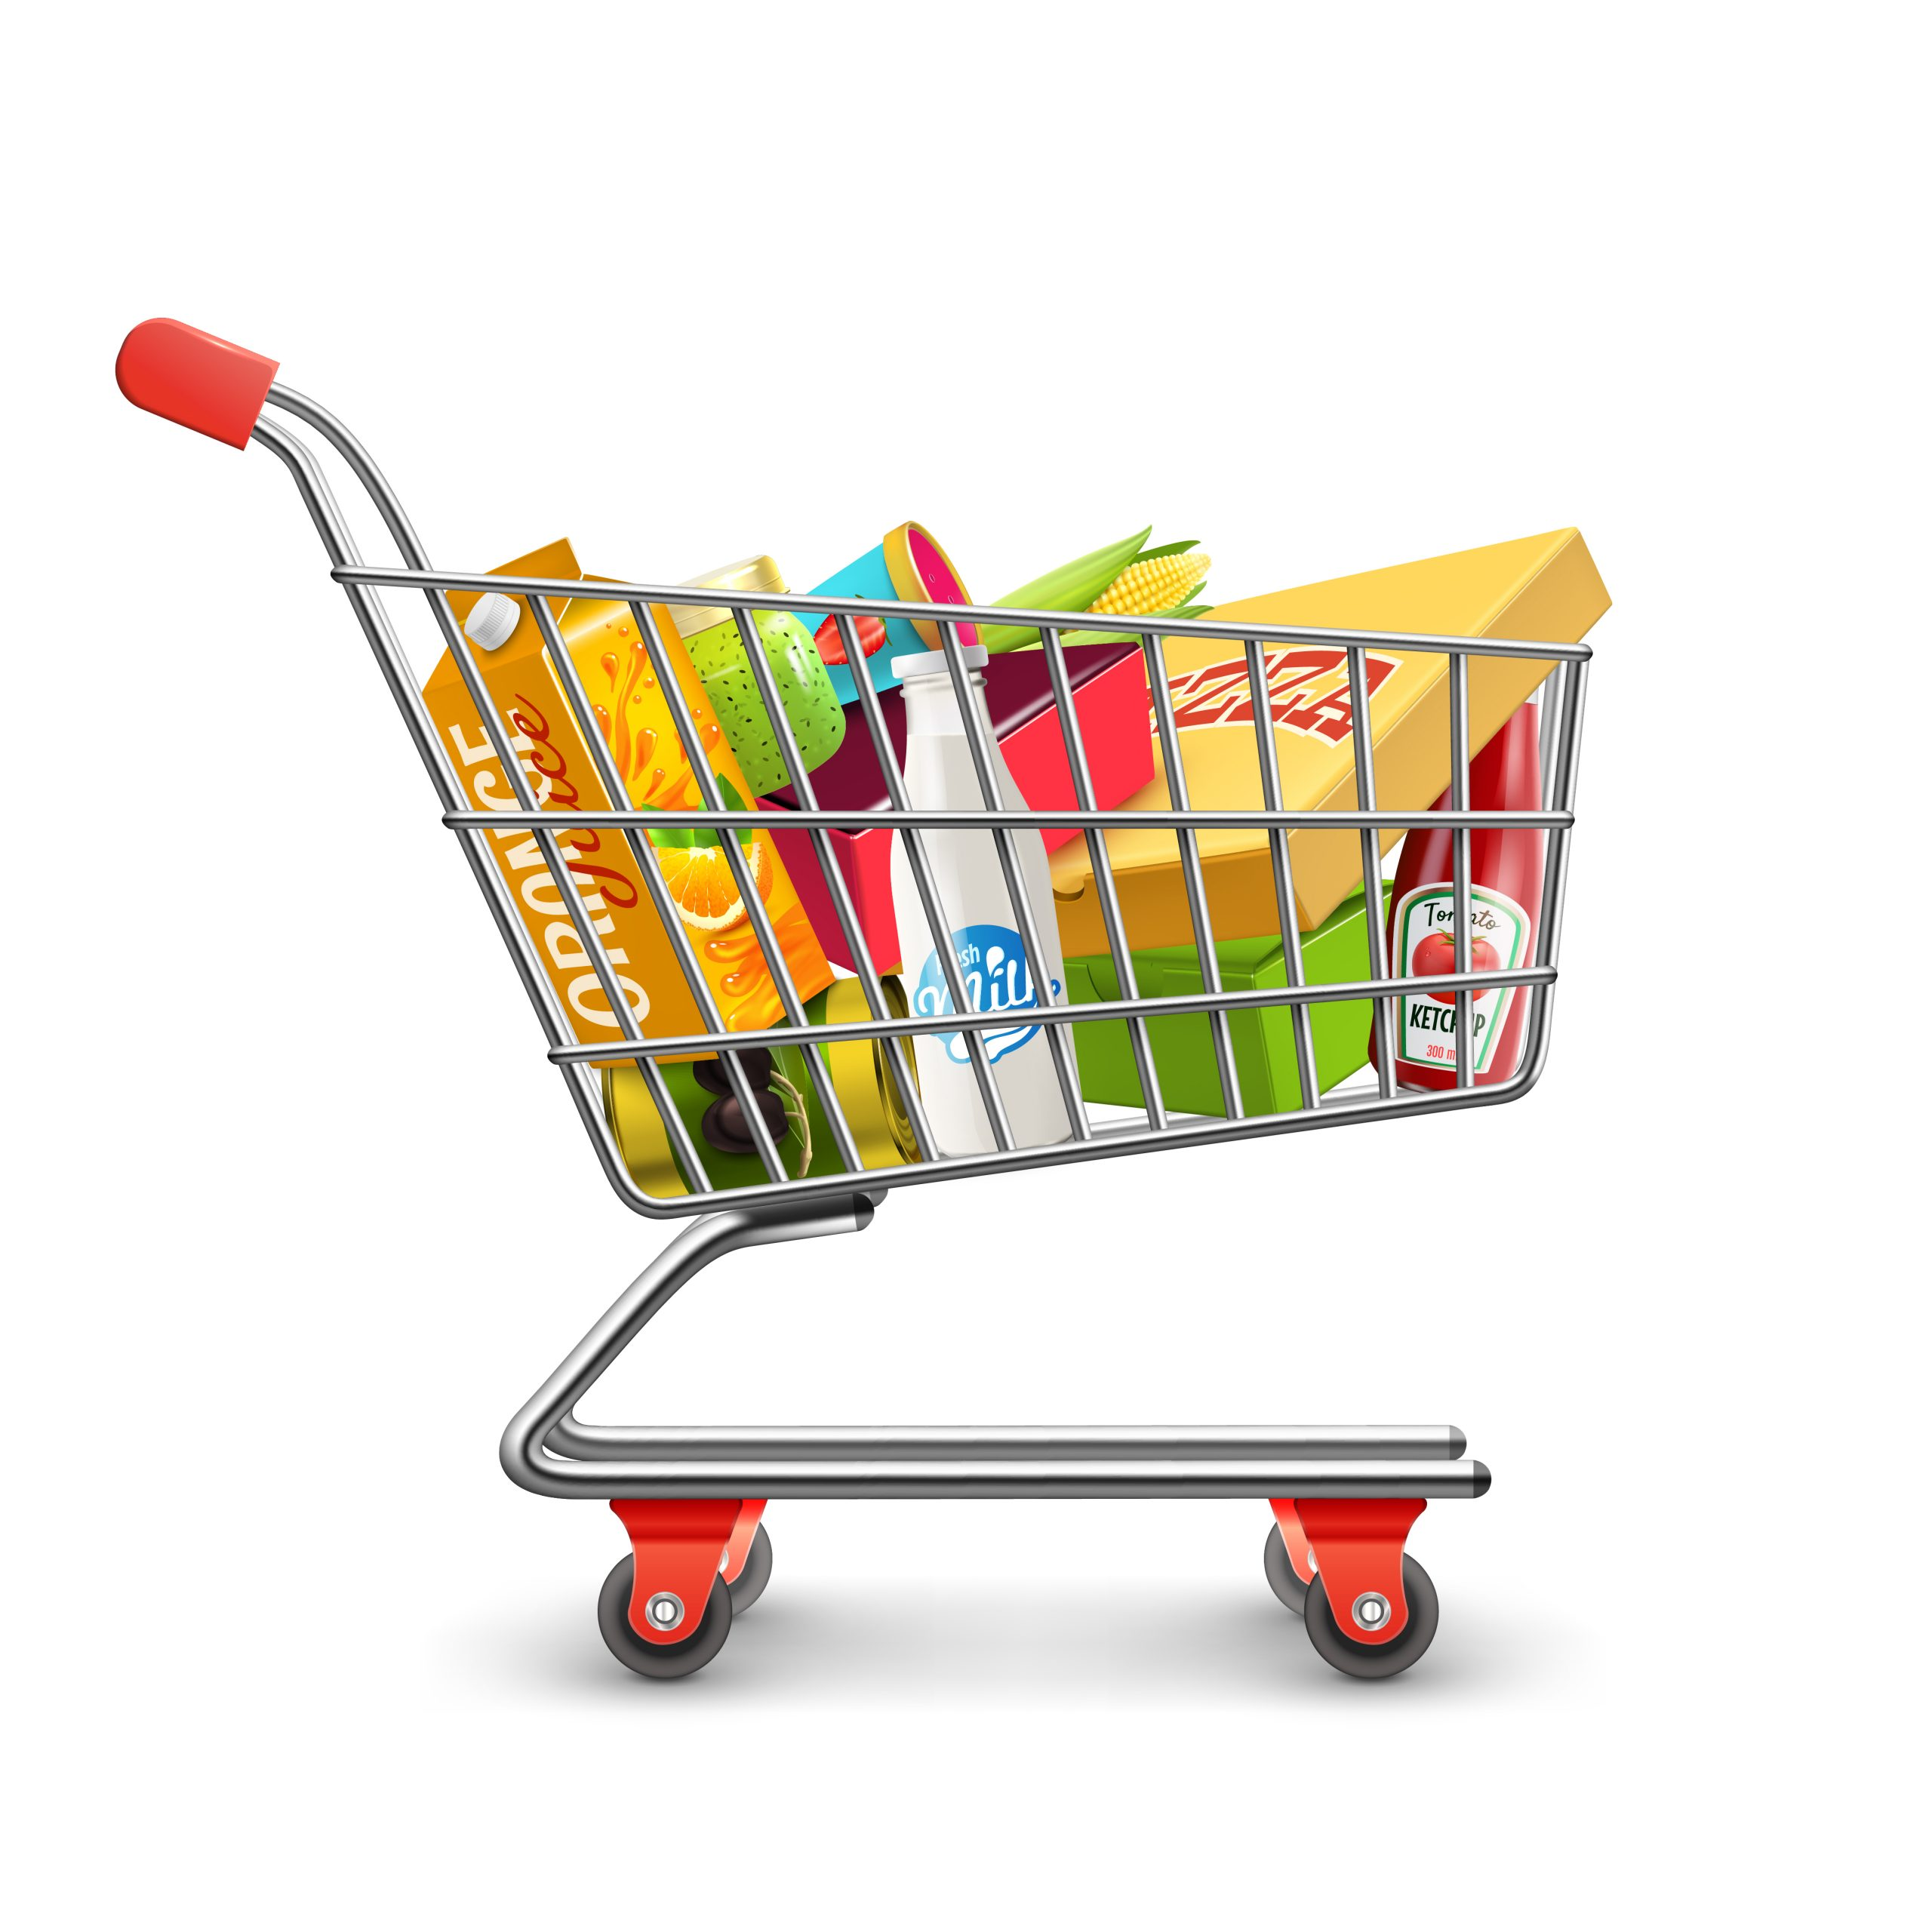 Ahold Delhaize Adds FreshDirect To Its Grocery Shopping Cart